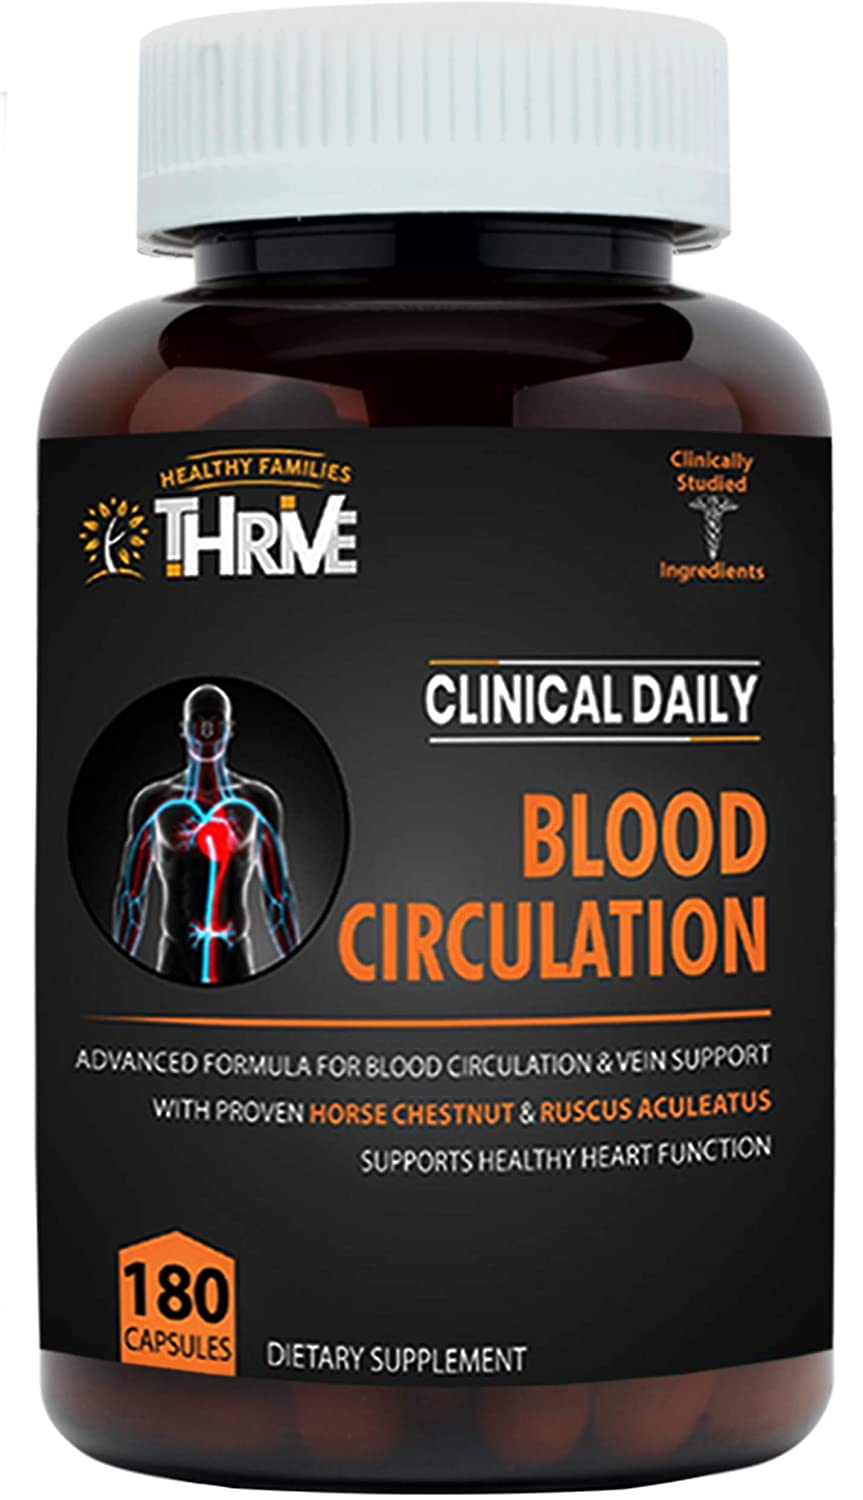 CLINICAL DAILY Blood Circulation Supplement. Butchers Broom, Horse Chestnut, Cayenne, Arginine, Diosmin. Herbal Varicose Vein Treatment. Poor Circulation and Vein Support for Healthy Legs 180 Capsules